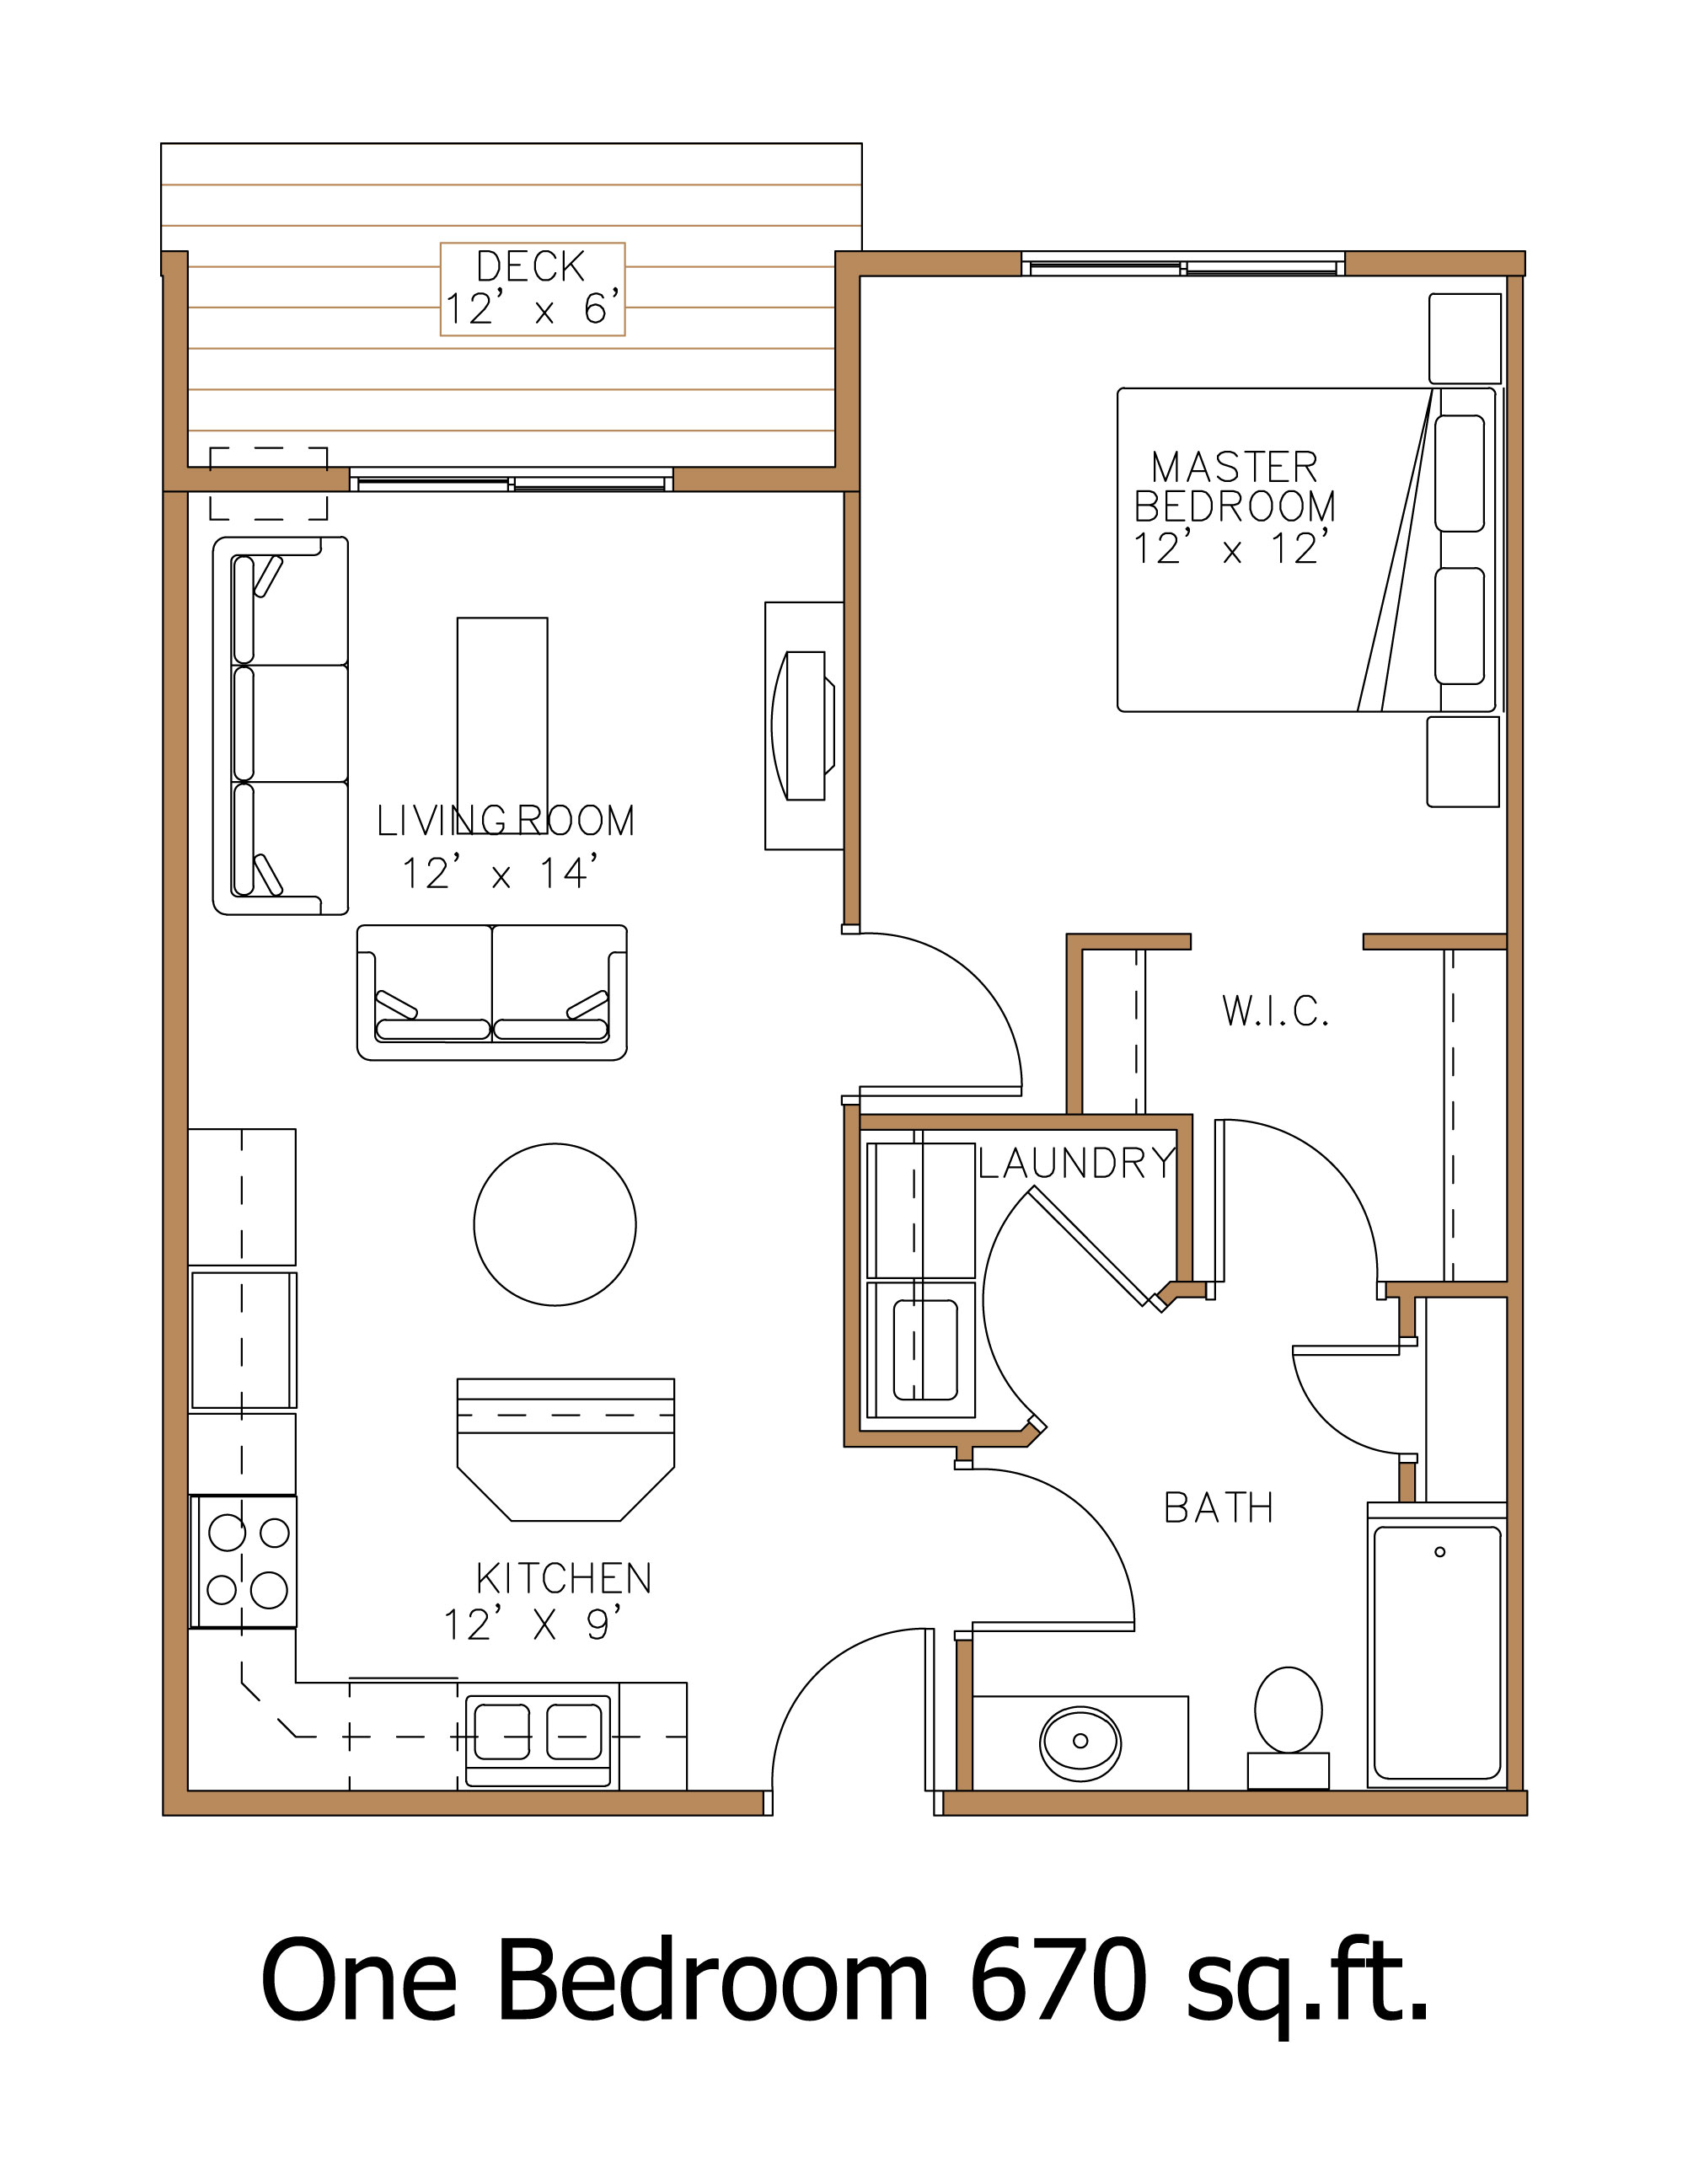 Hawley mn apartment floor plans great north properties llc for One bedroom apartment design plans